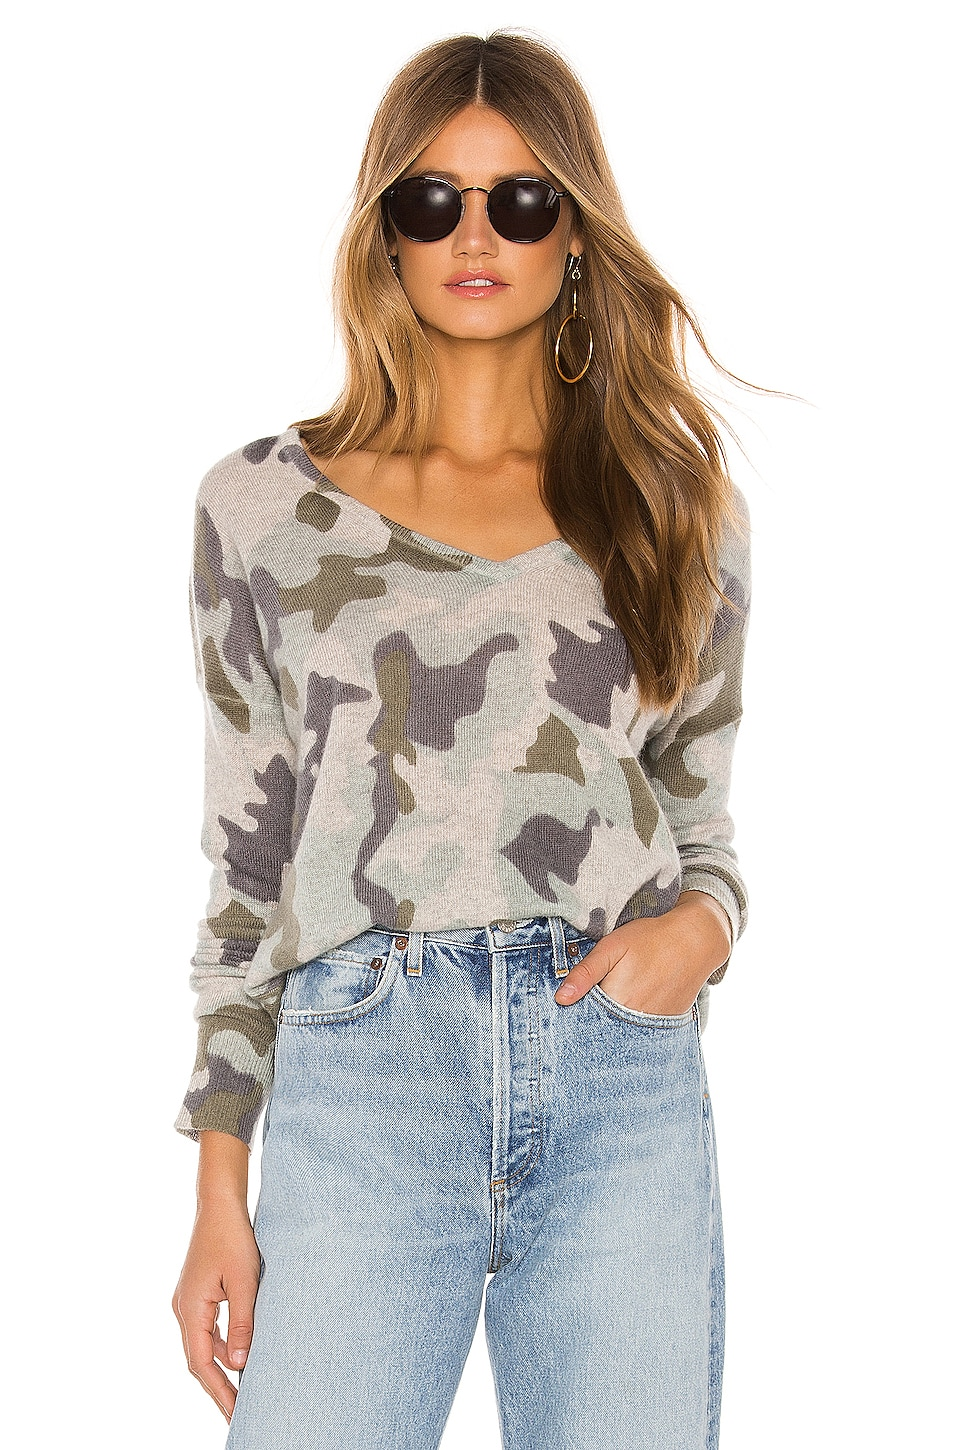 White + Warren Essential Cashmere V Neck in Camo